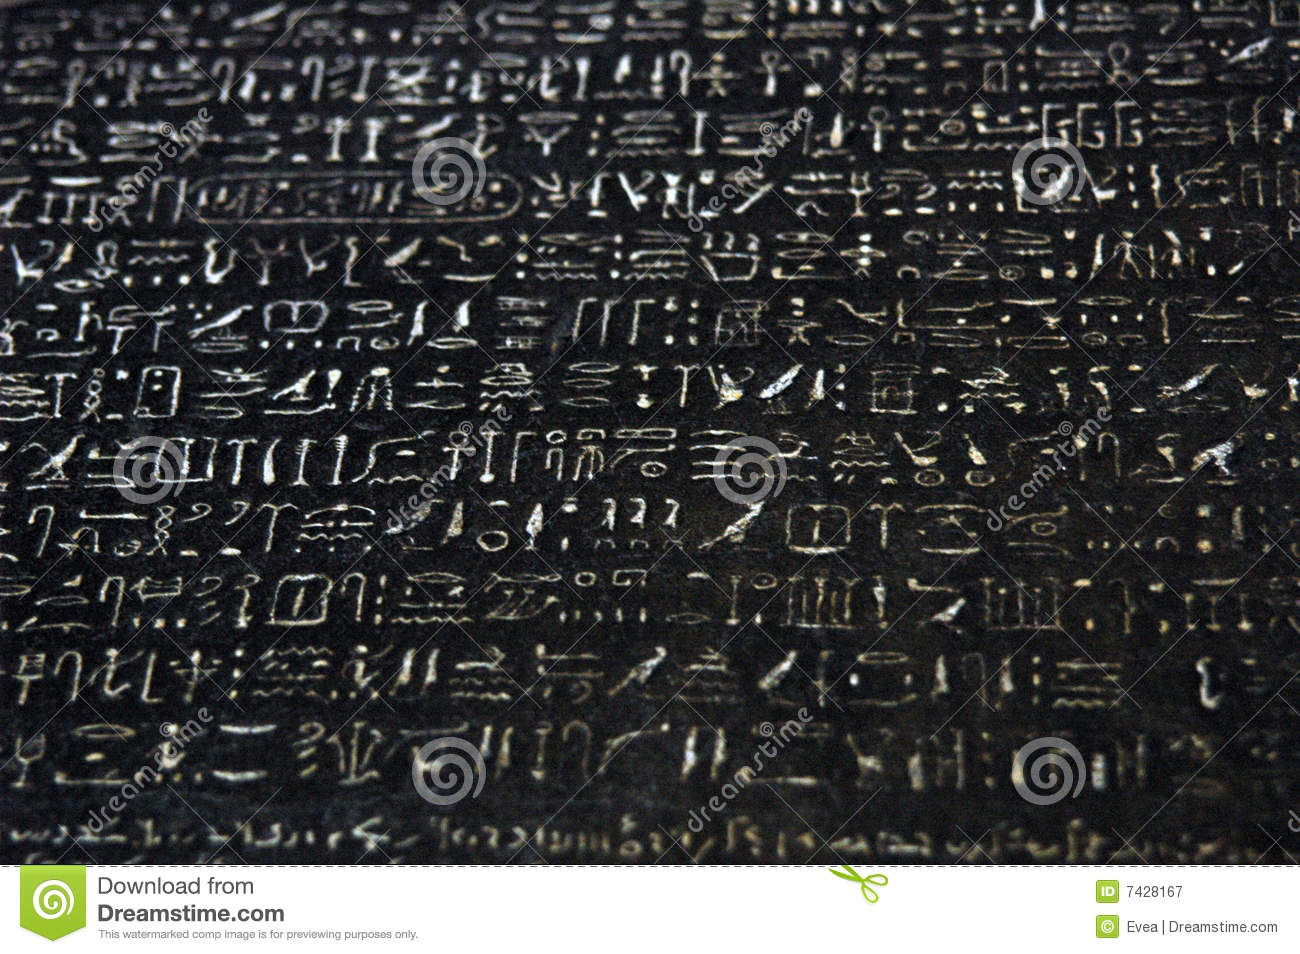 ROSETTA STONE stock image  Image of egyptian, artifact - 7428167